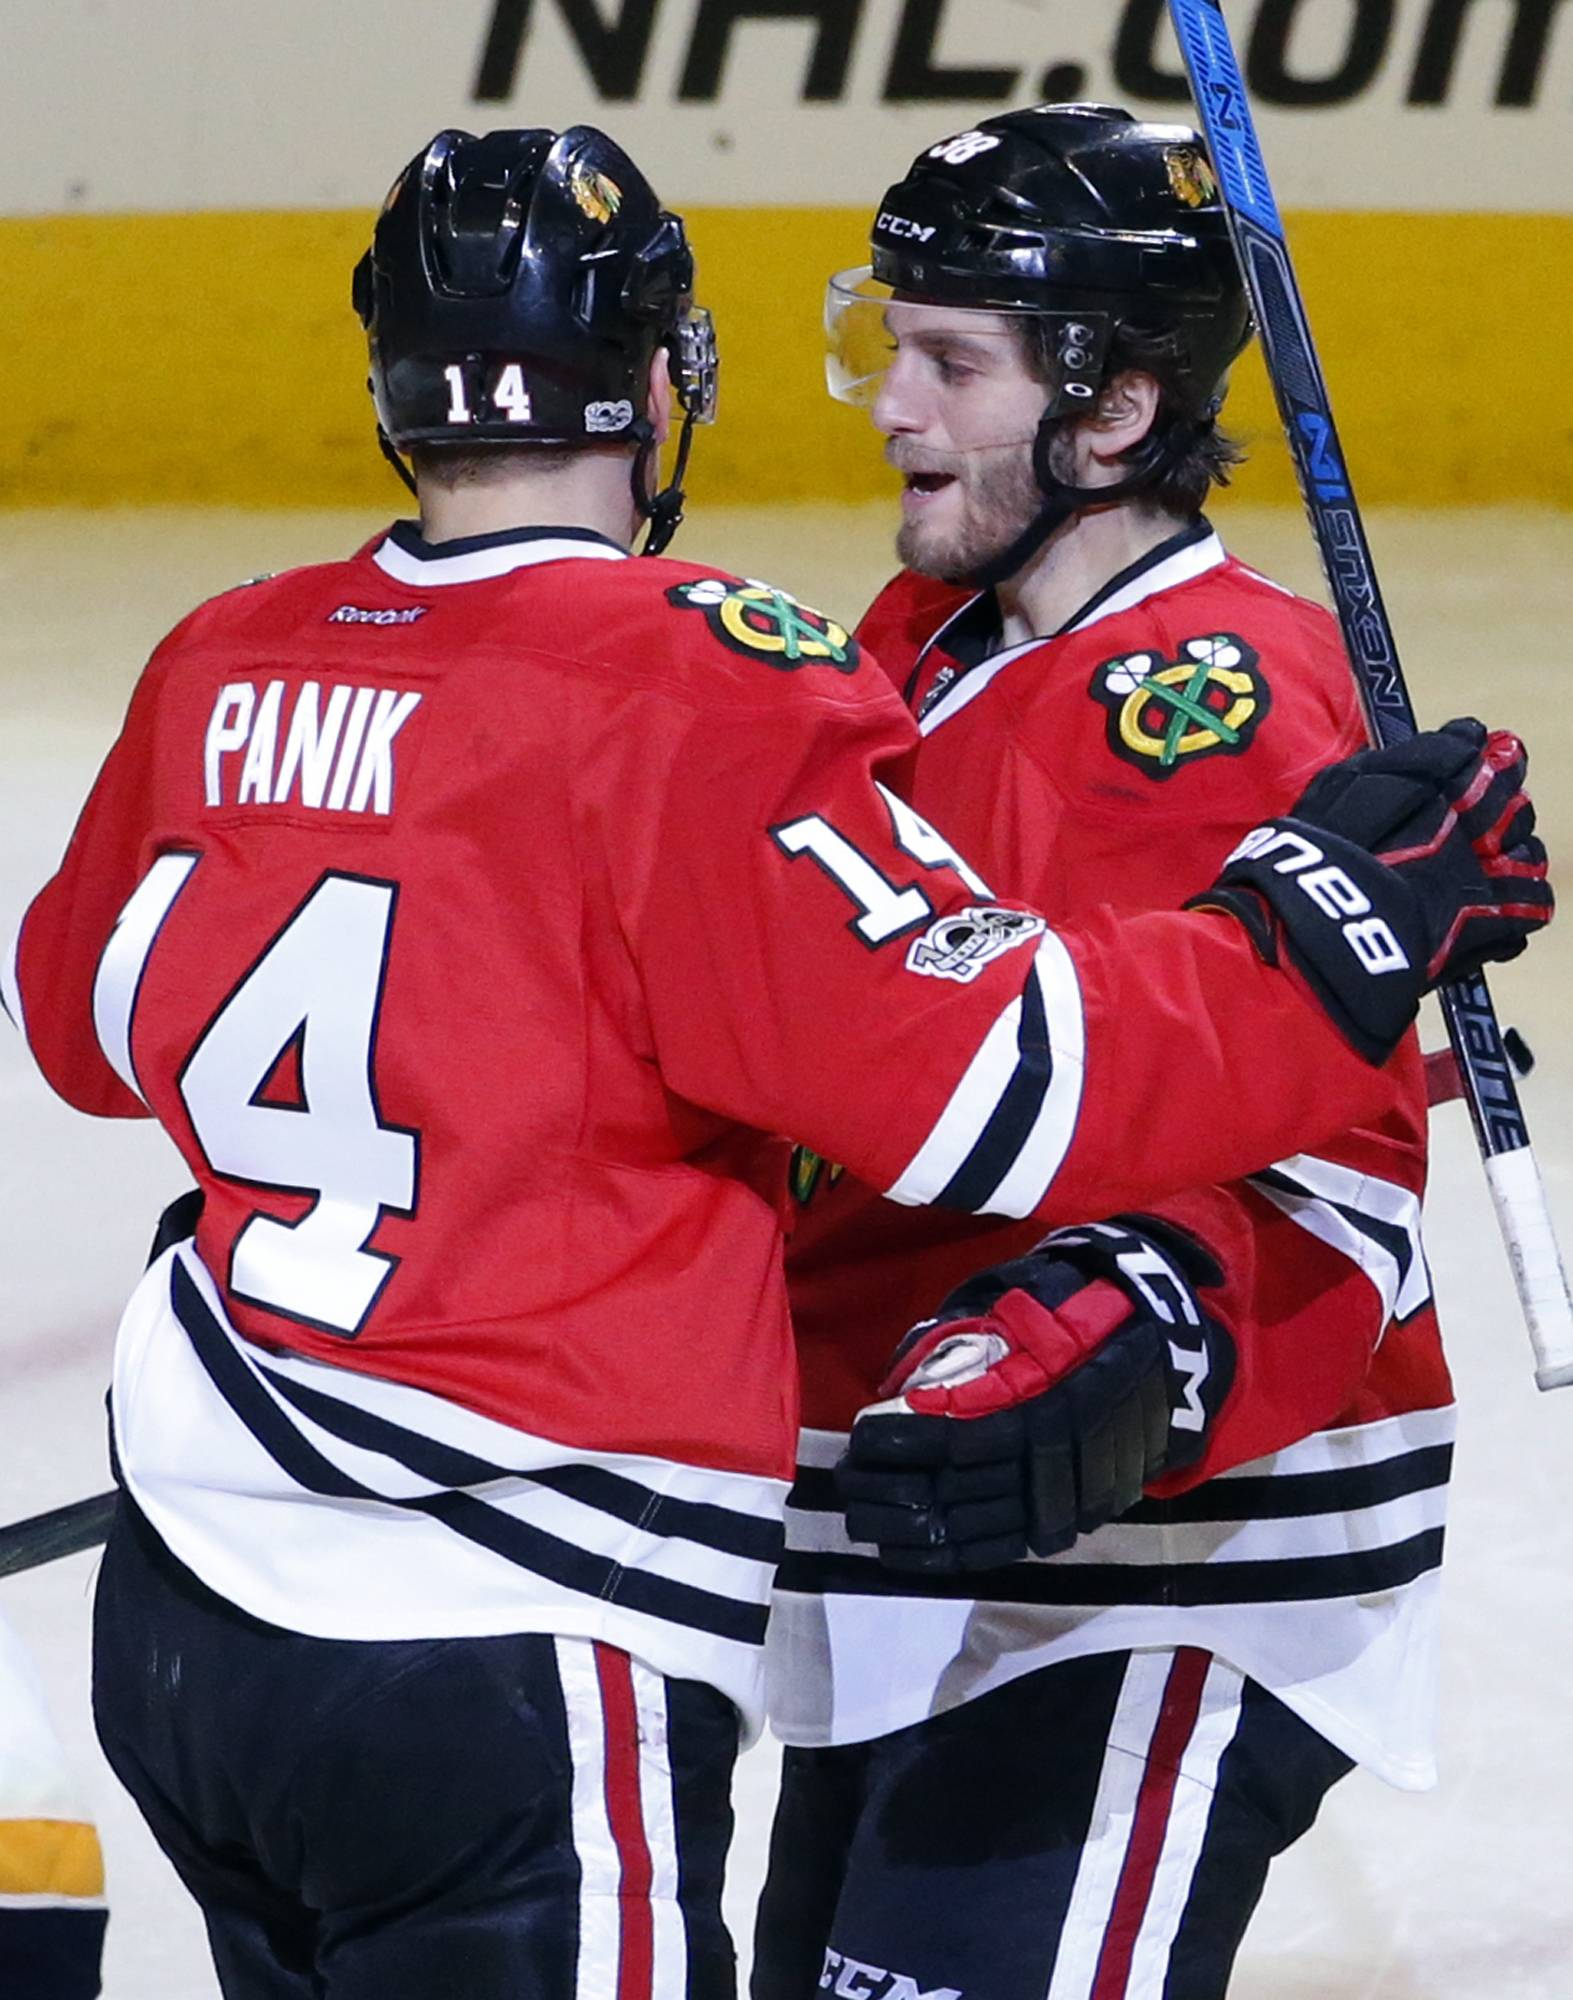 Hartman's hat trick a real winner for Chicago Blackhawks